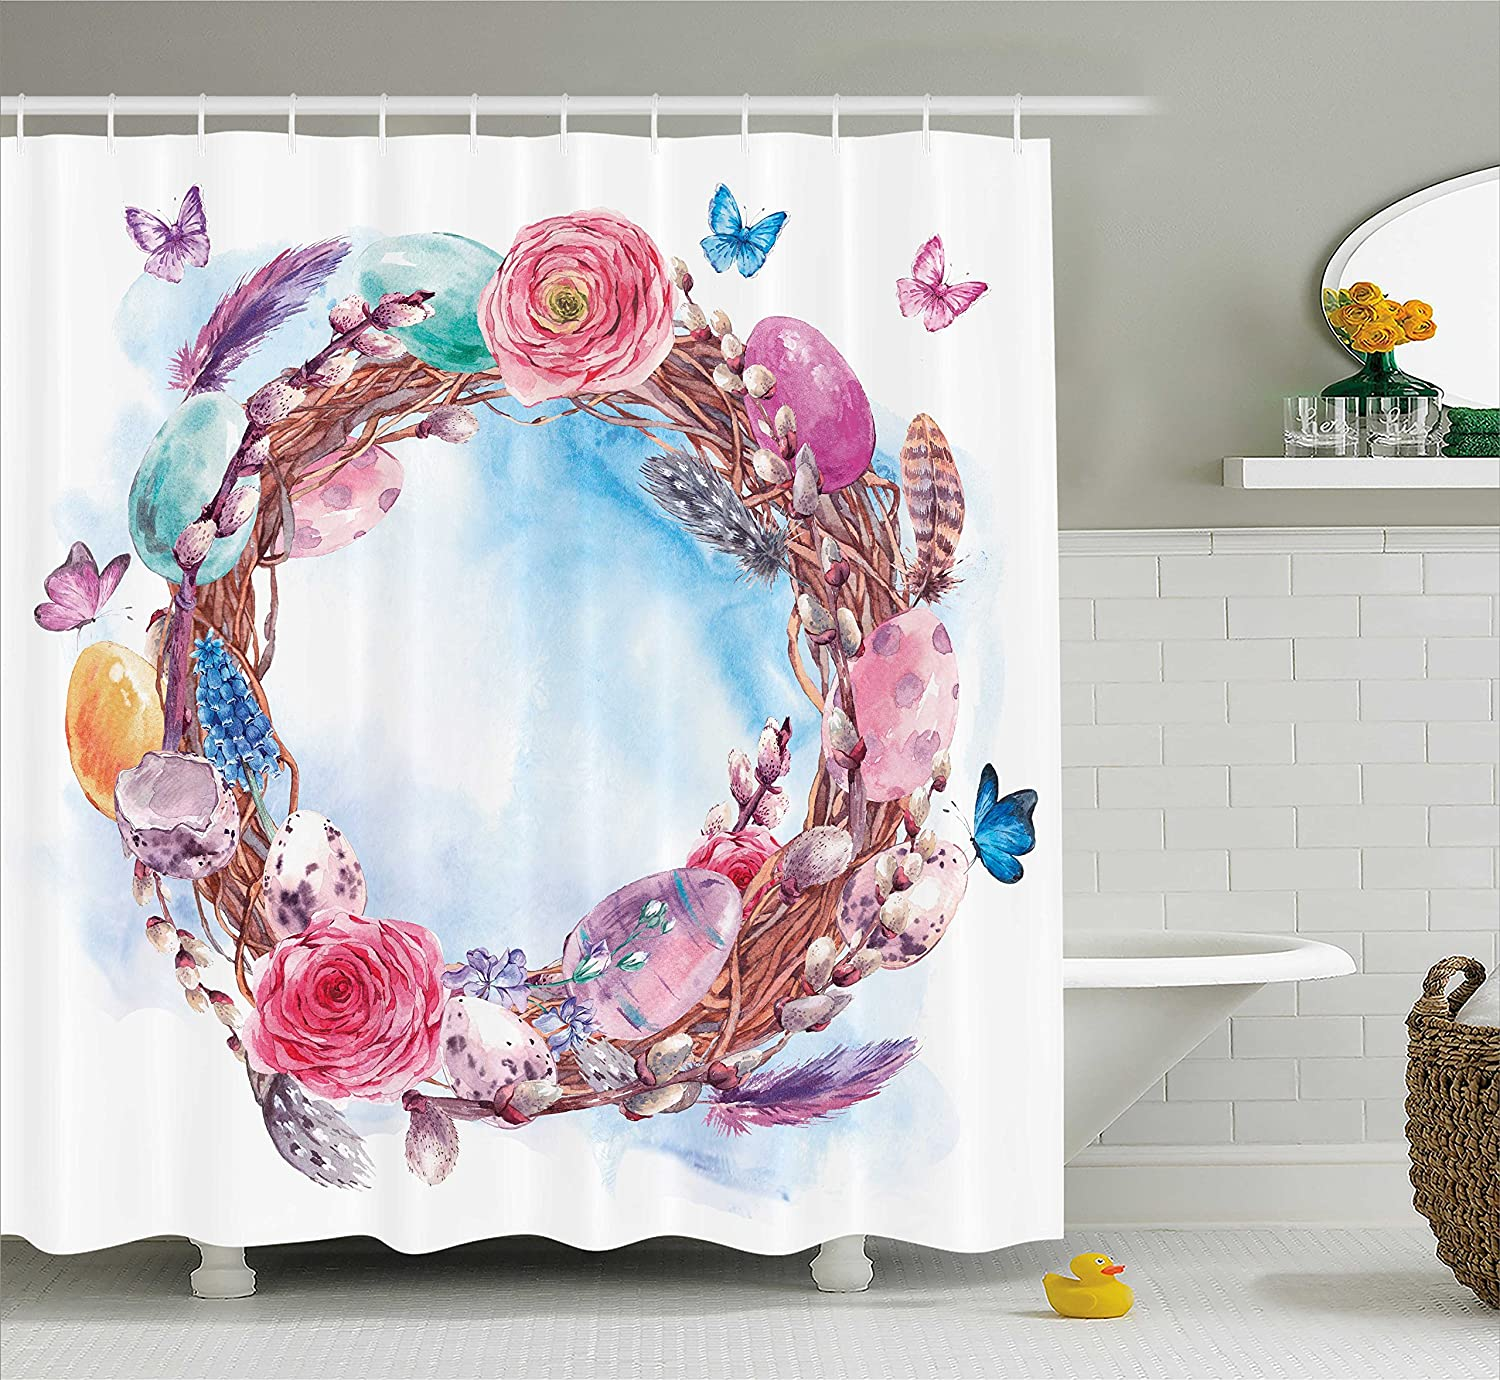 Ambesonne Spring Shower Curtain Floral Wreath With Branches Butterflies Feathers Happy Harvest Season Watercolor Art Fabric Bathroom Decor Set Hooks